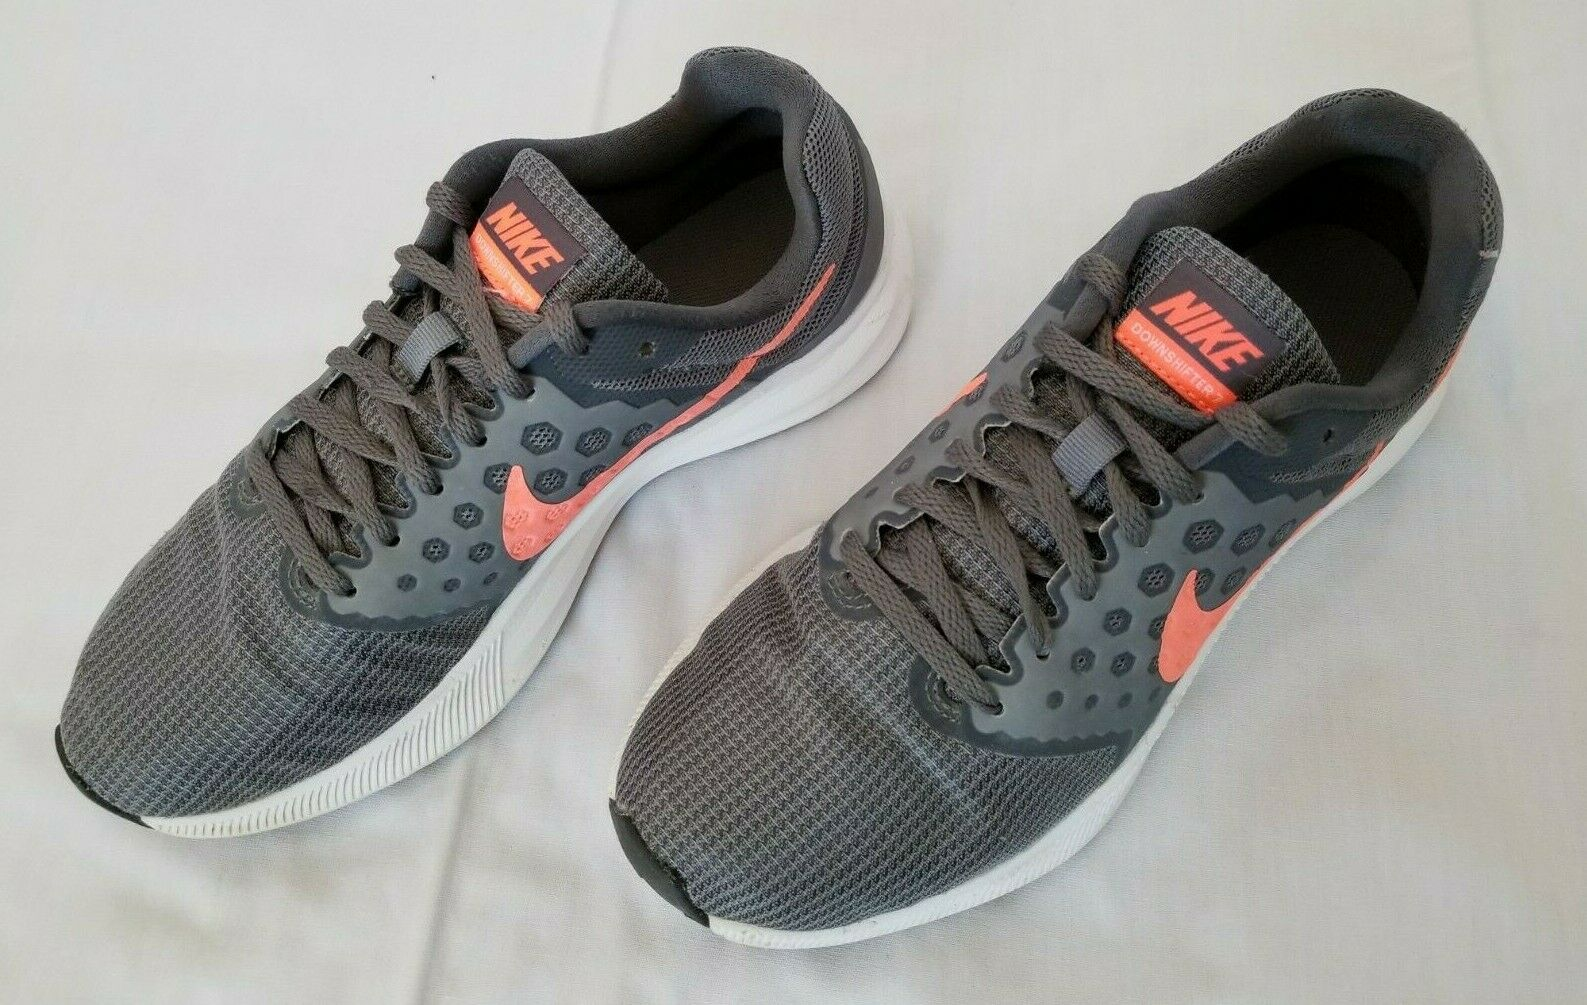 Womens Size 8.5 Grey Pink Nike Downshifter 7 Running shoes 852466-001 preowned